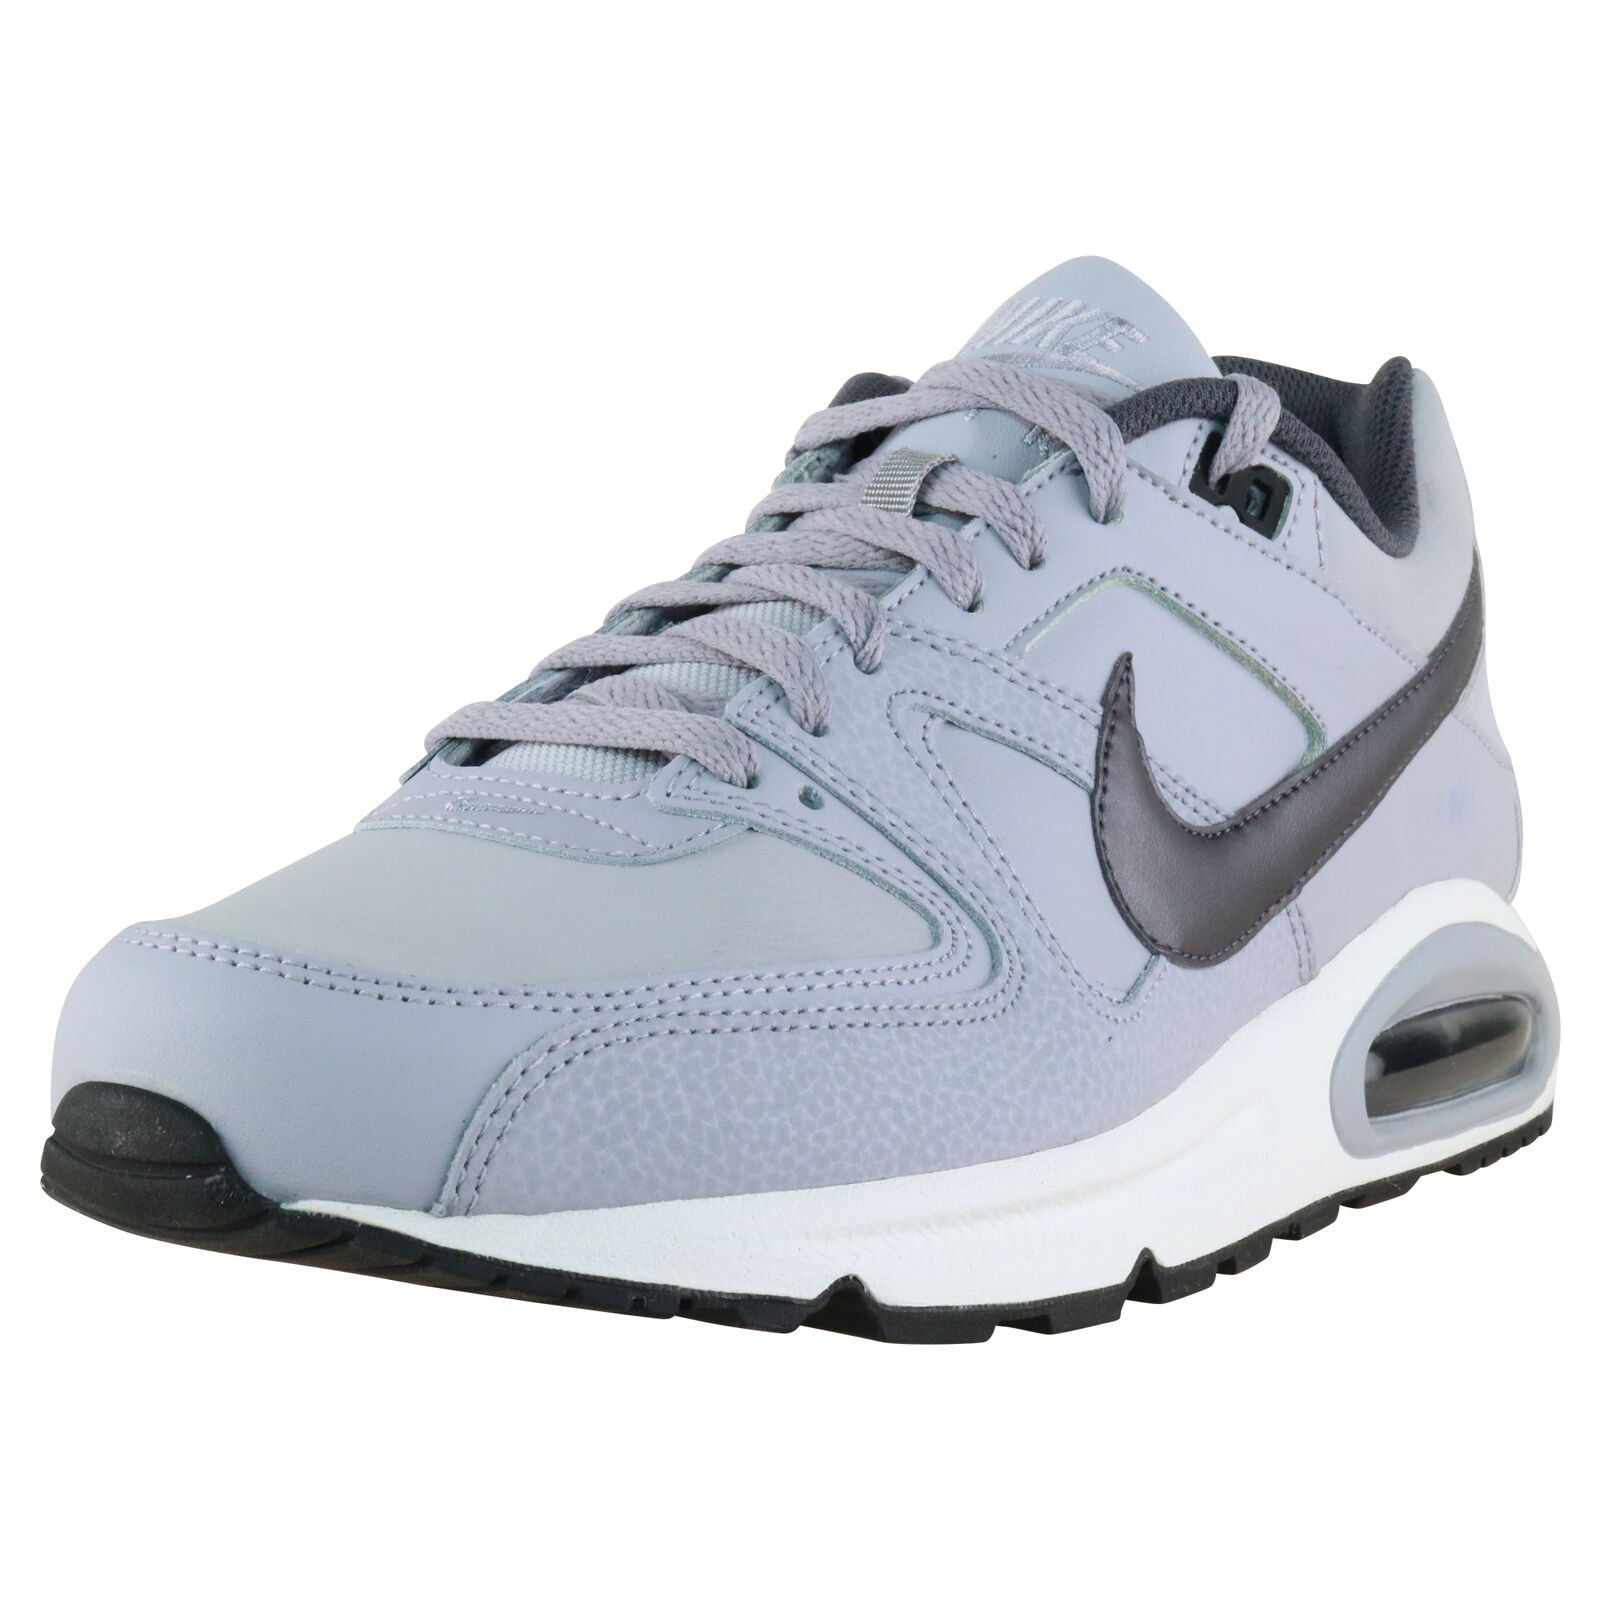 Details about Nike Air Max Command Leather GreyWhite 749760 012